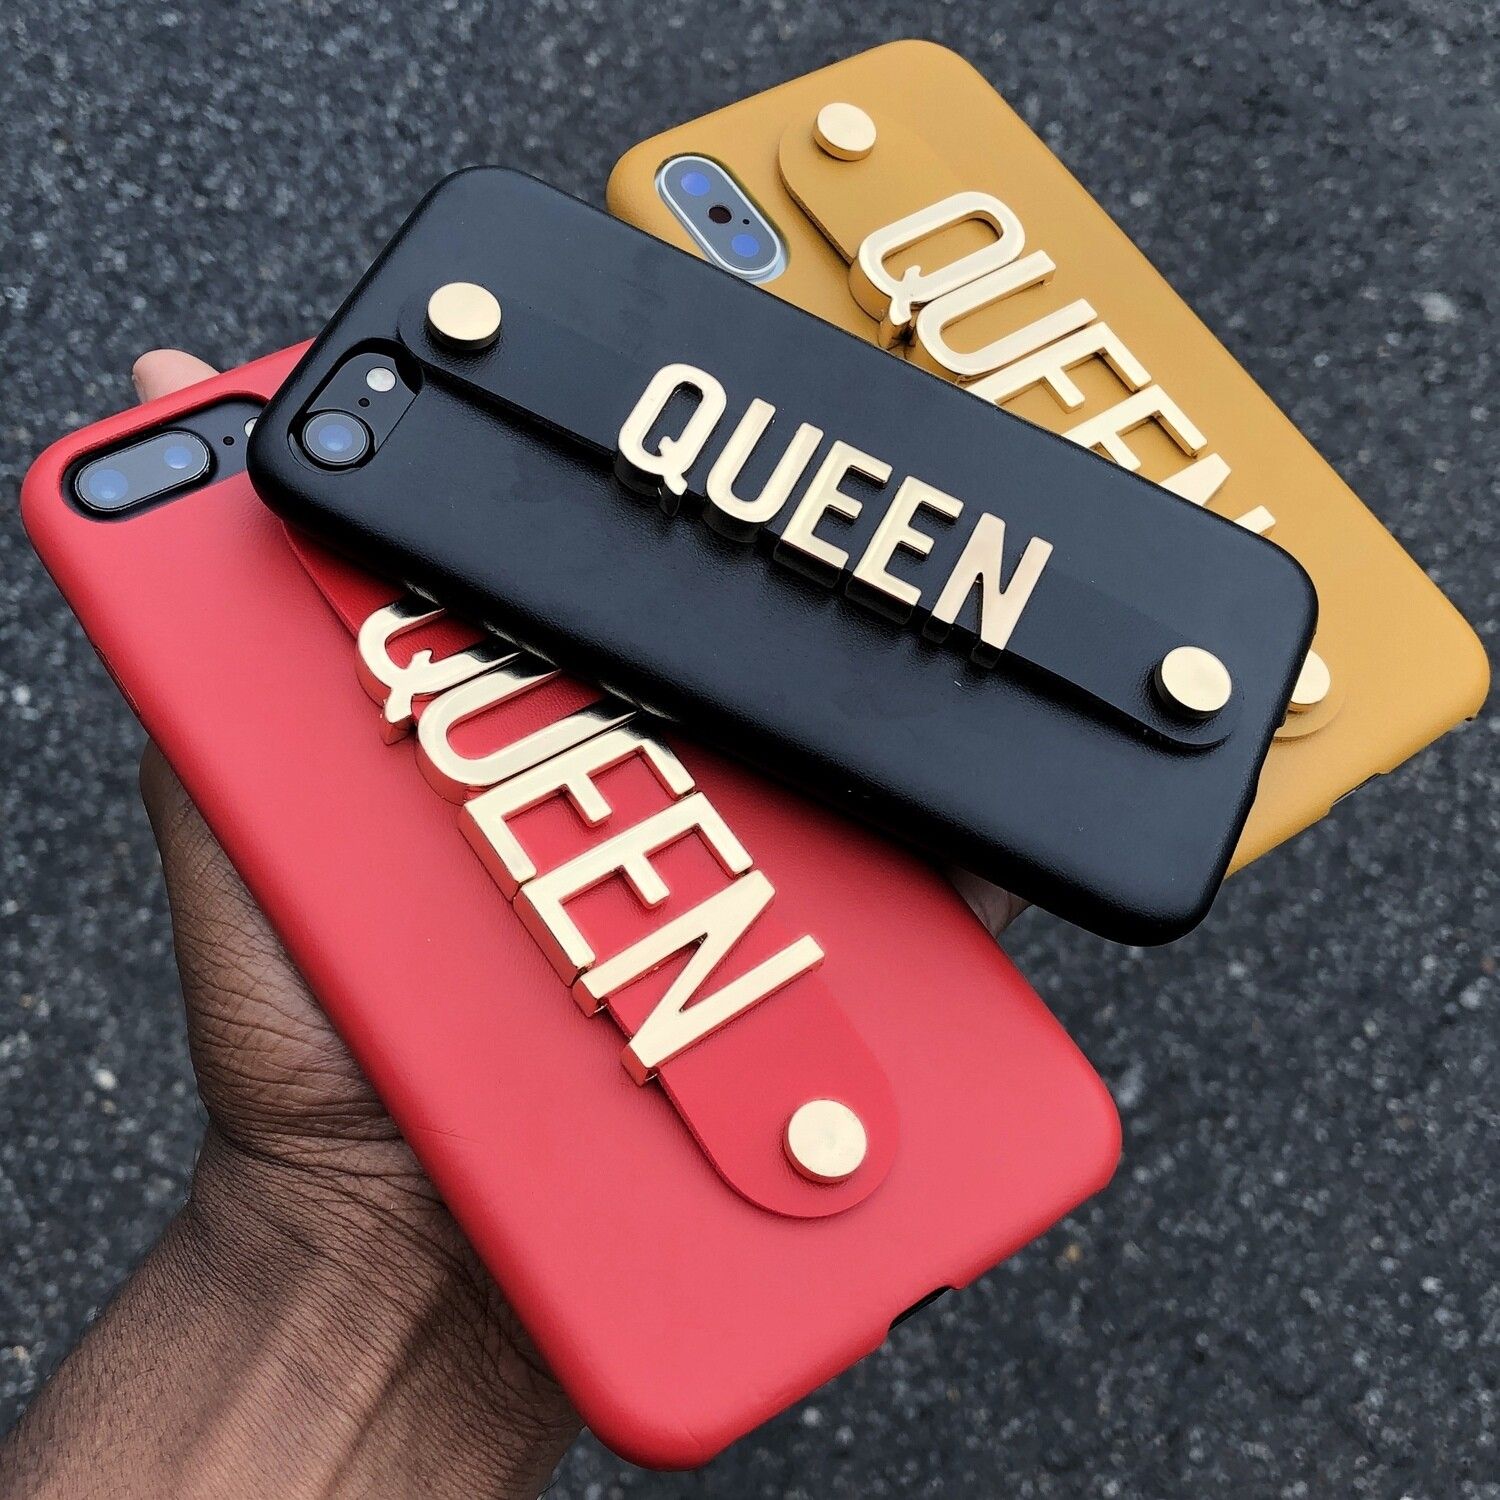 Leather/Gold customized iPhone case